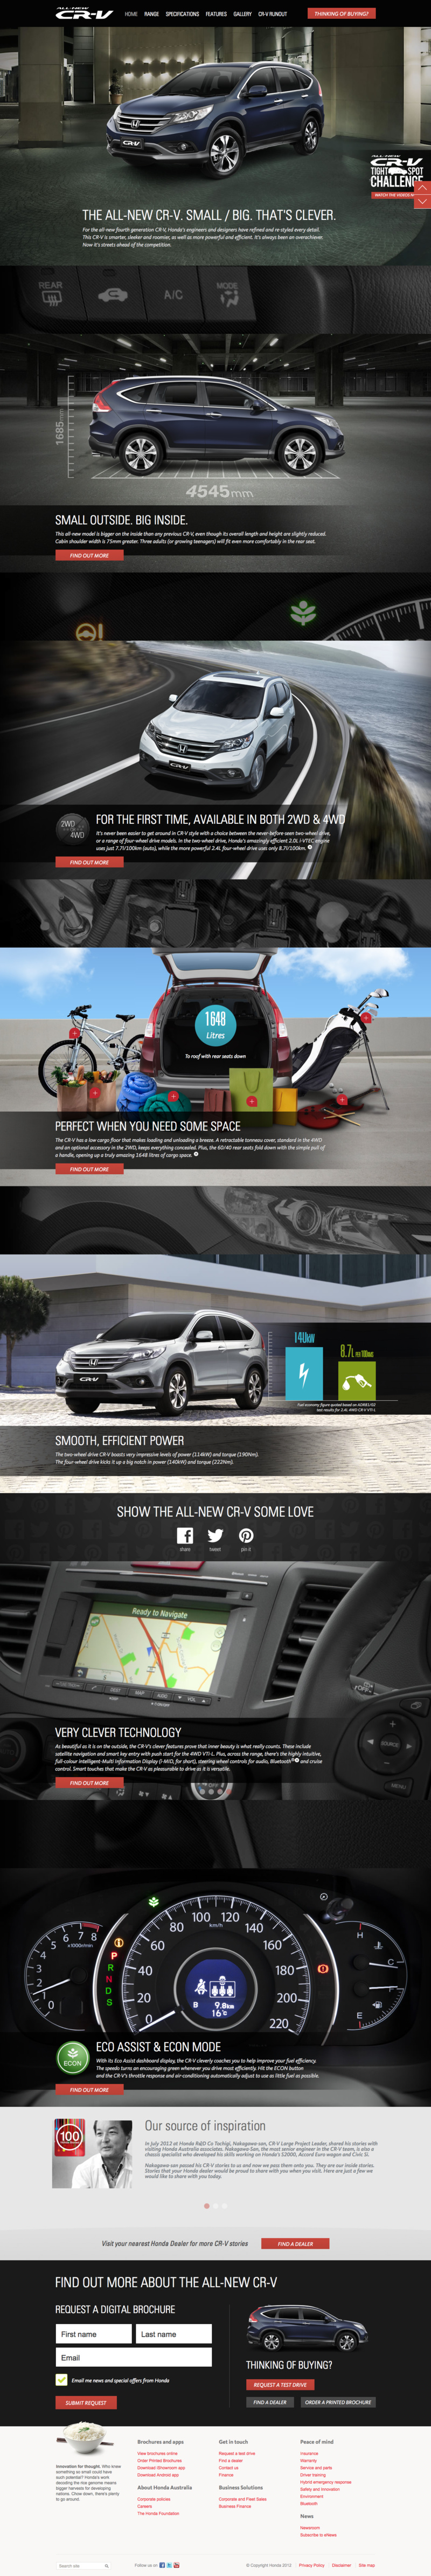 Official Honda CR-V Site